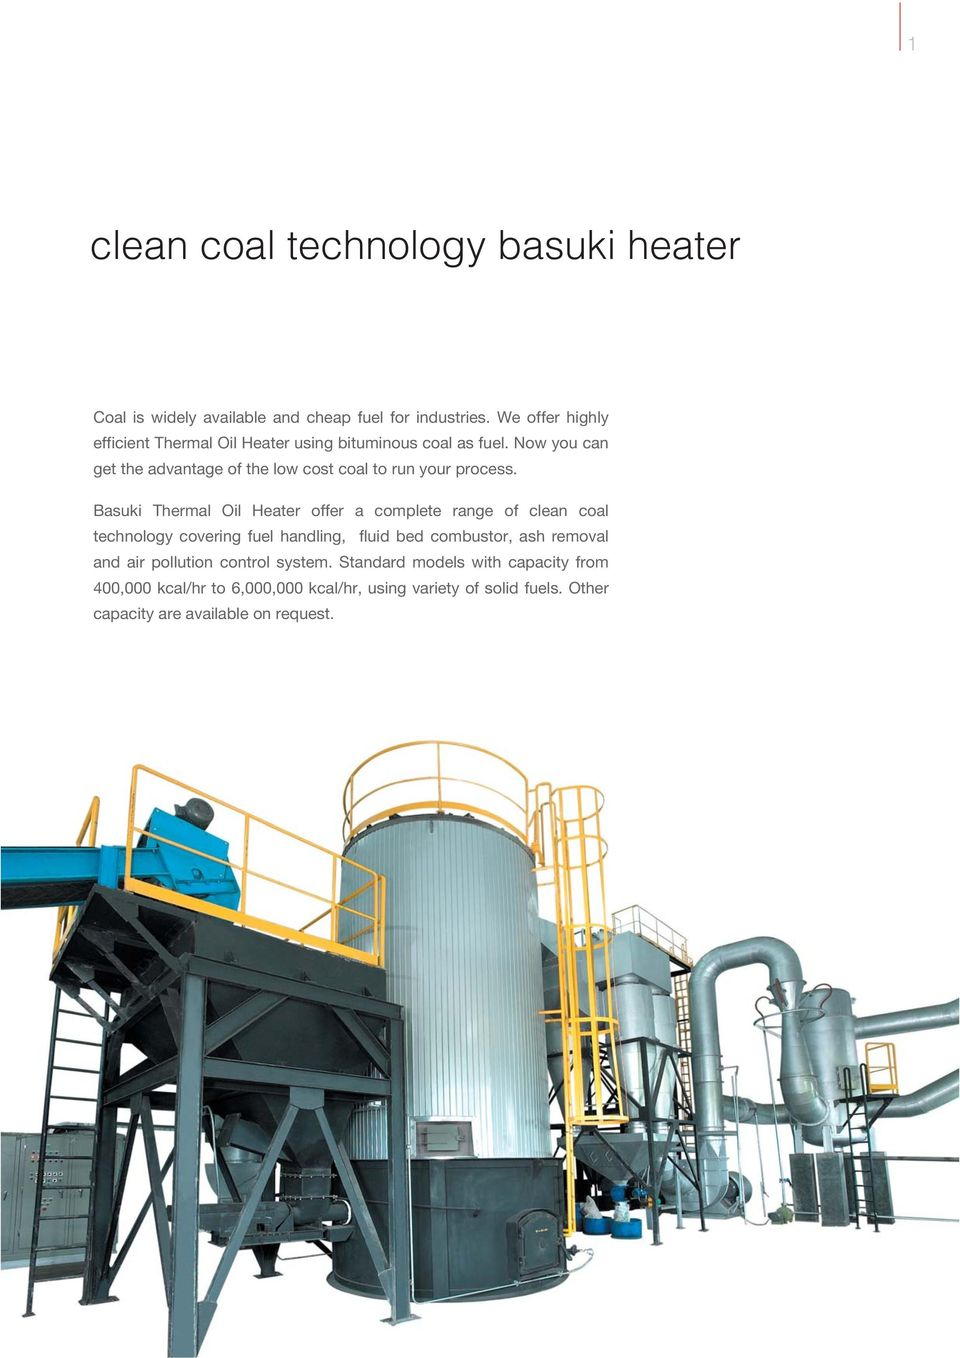 Now you can get the advantage of the low cost coal to run your process.